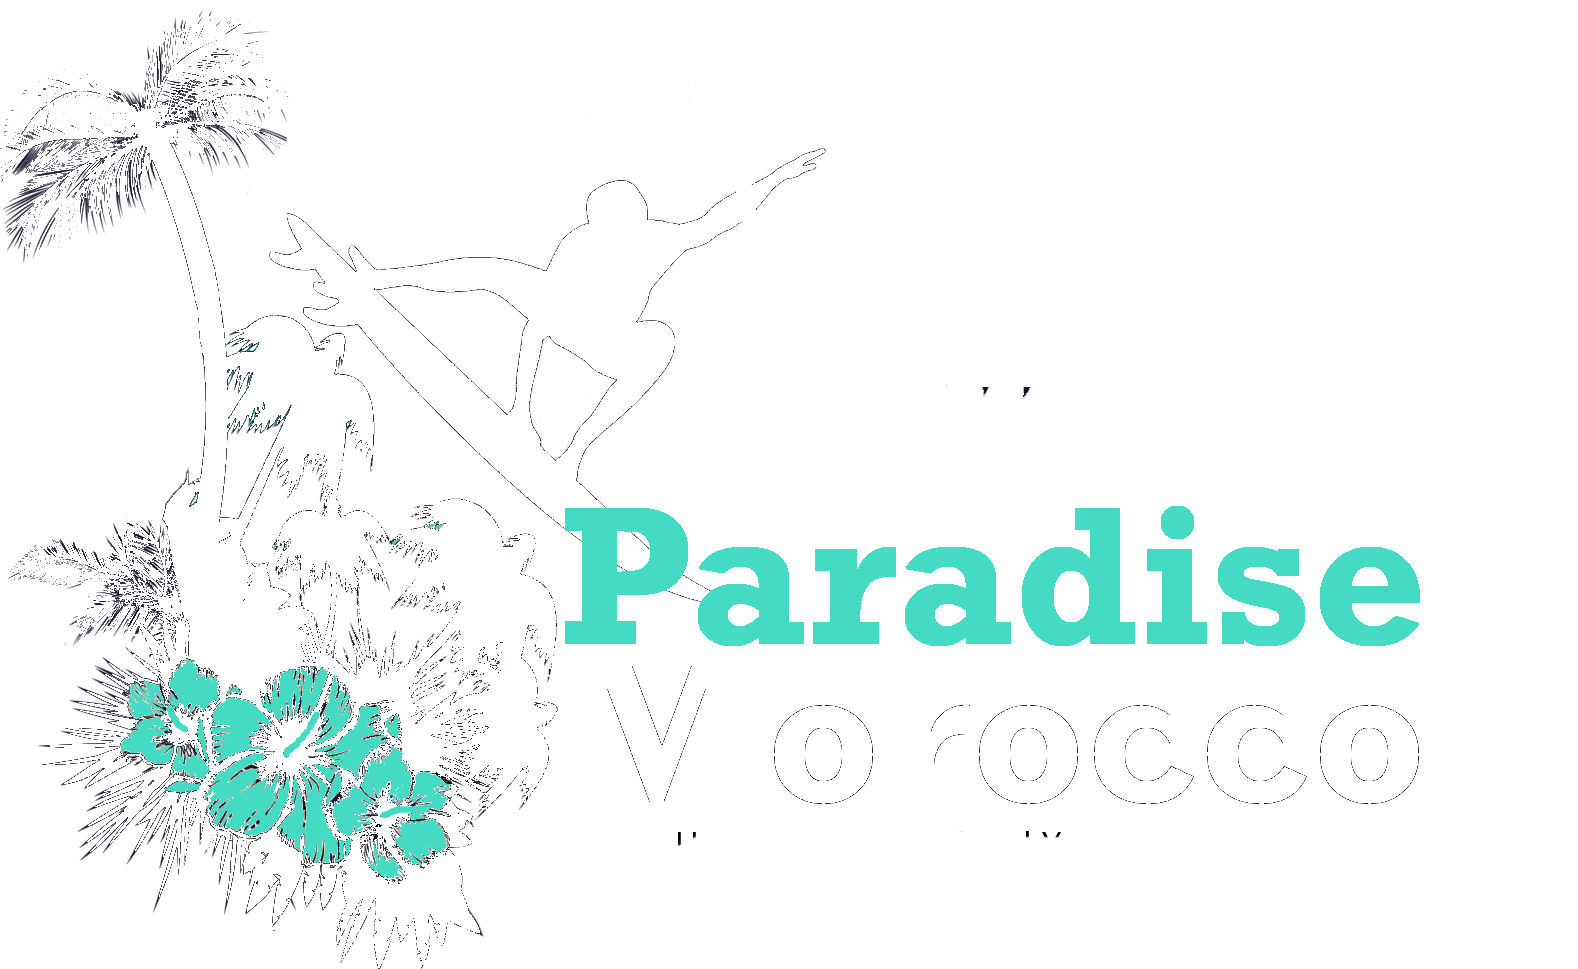 Surfcamp Morocco – Surf Paradise Morocco